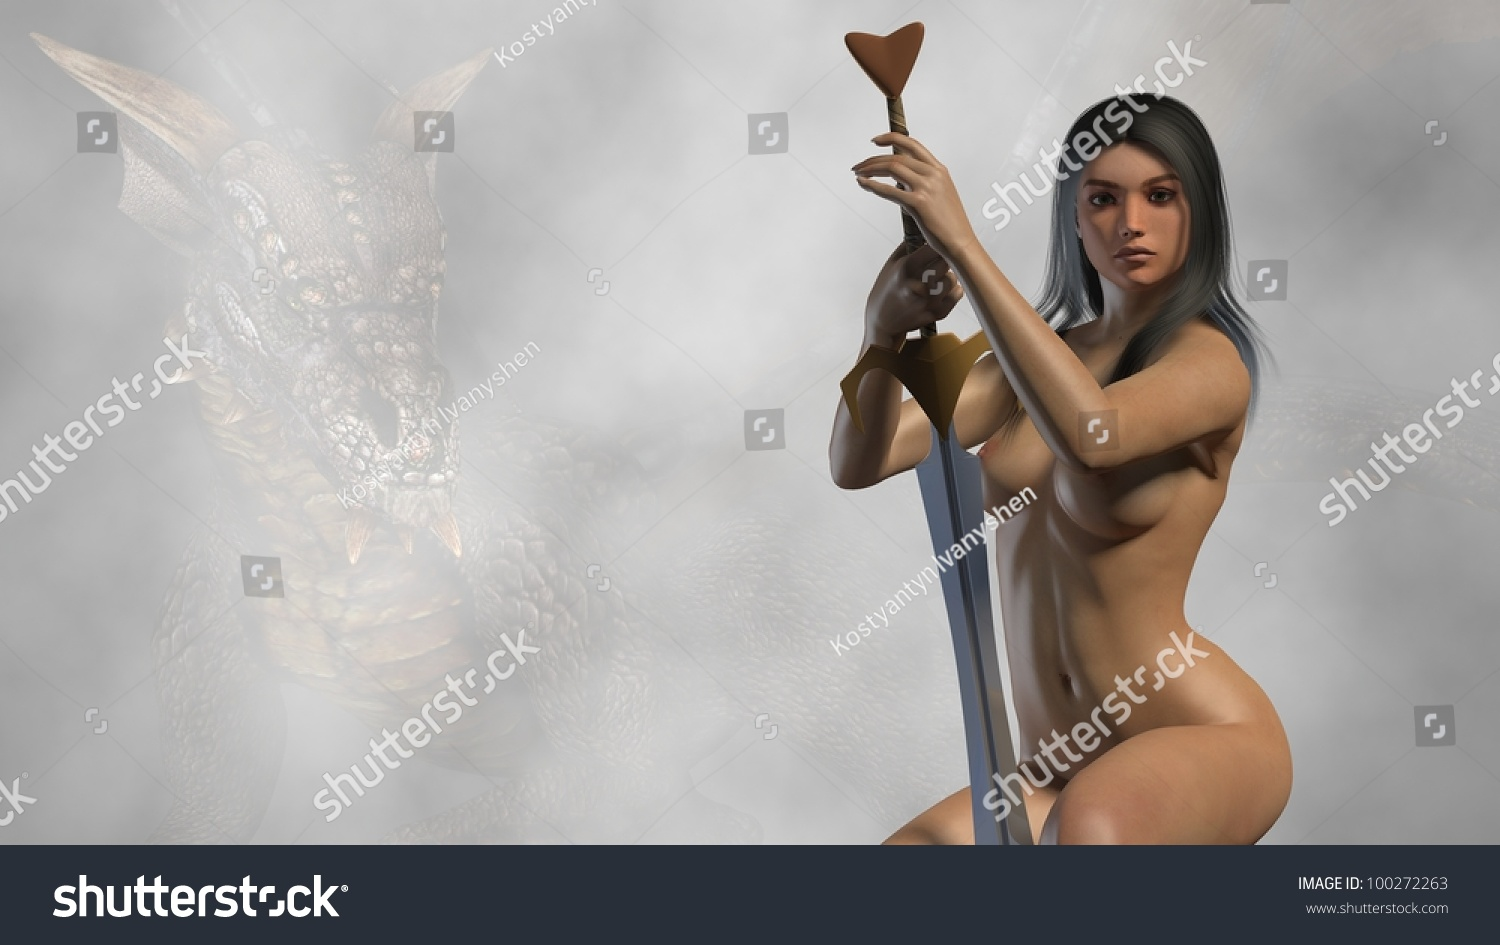 Female fantasy fighters nude nsfw image